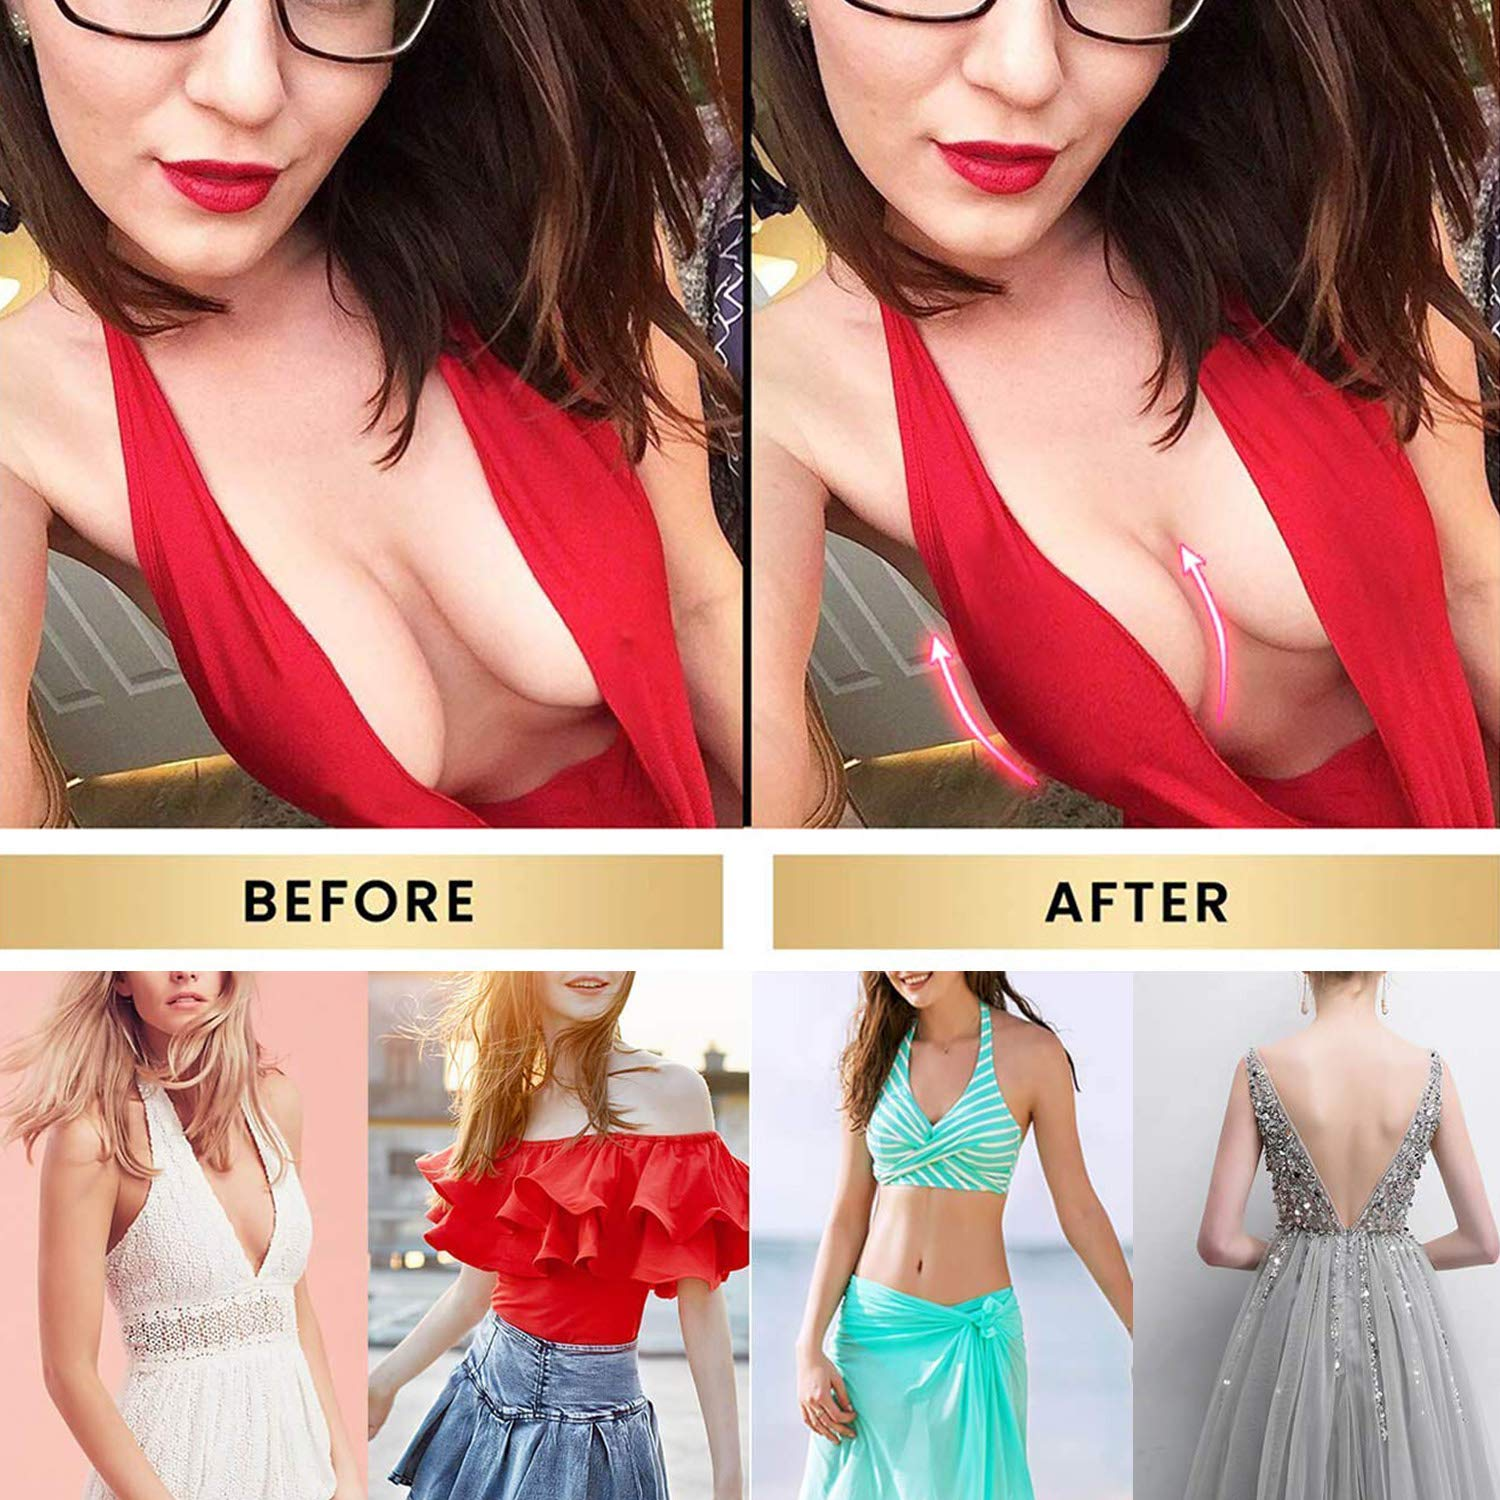 Strapless Adhesive Nipple Covers Invisible Reusable Super Thin Breast Lift Pasties for Women